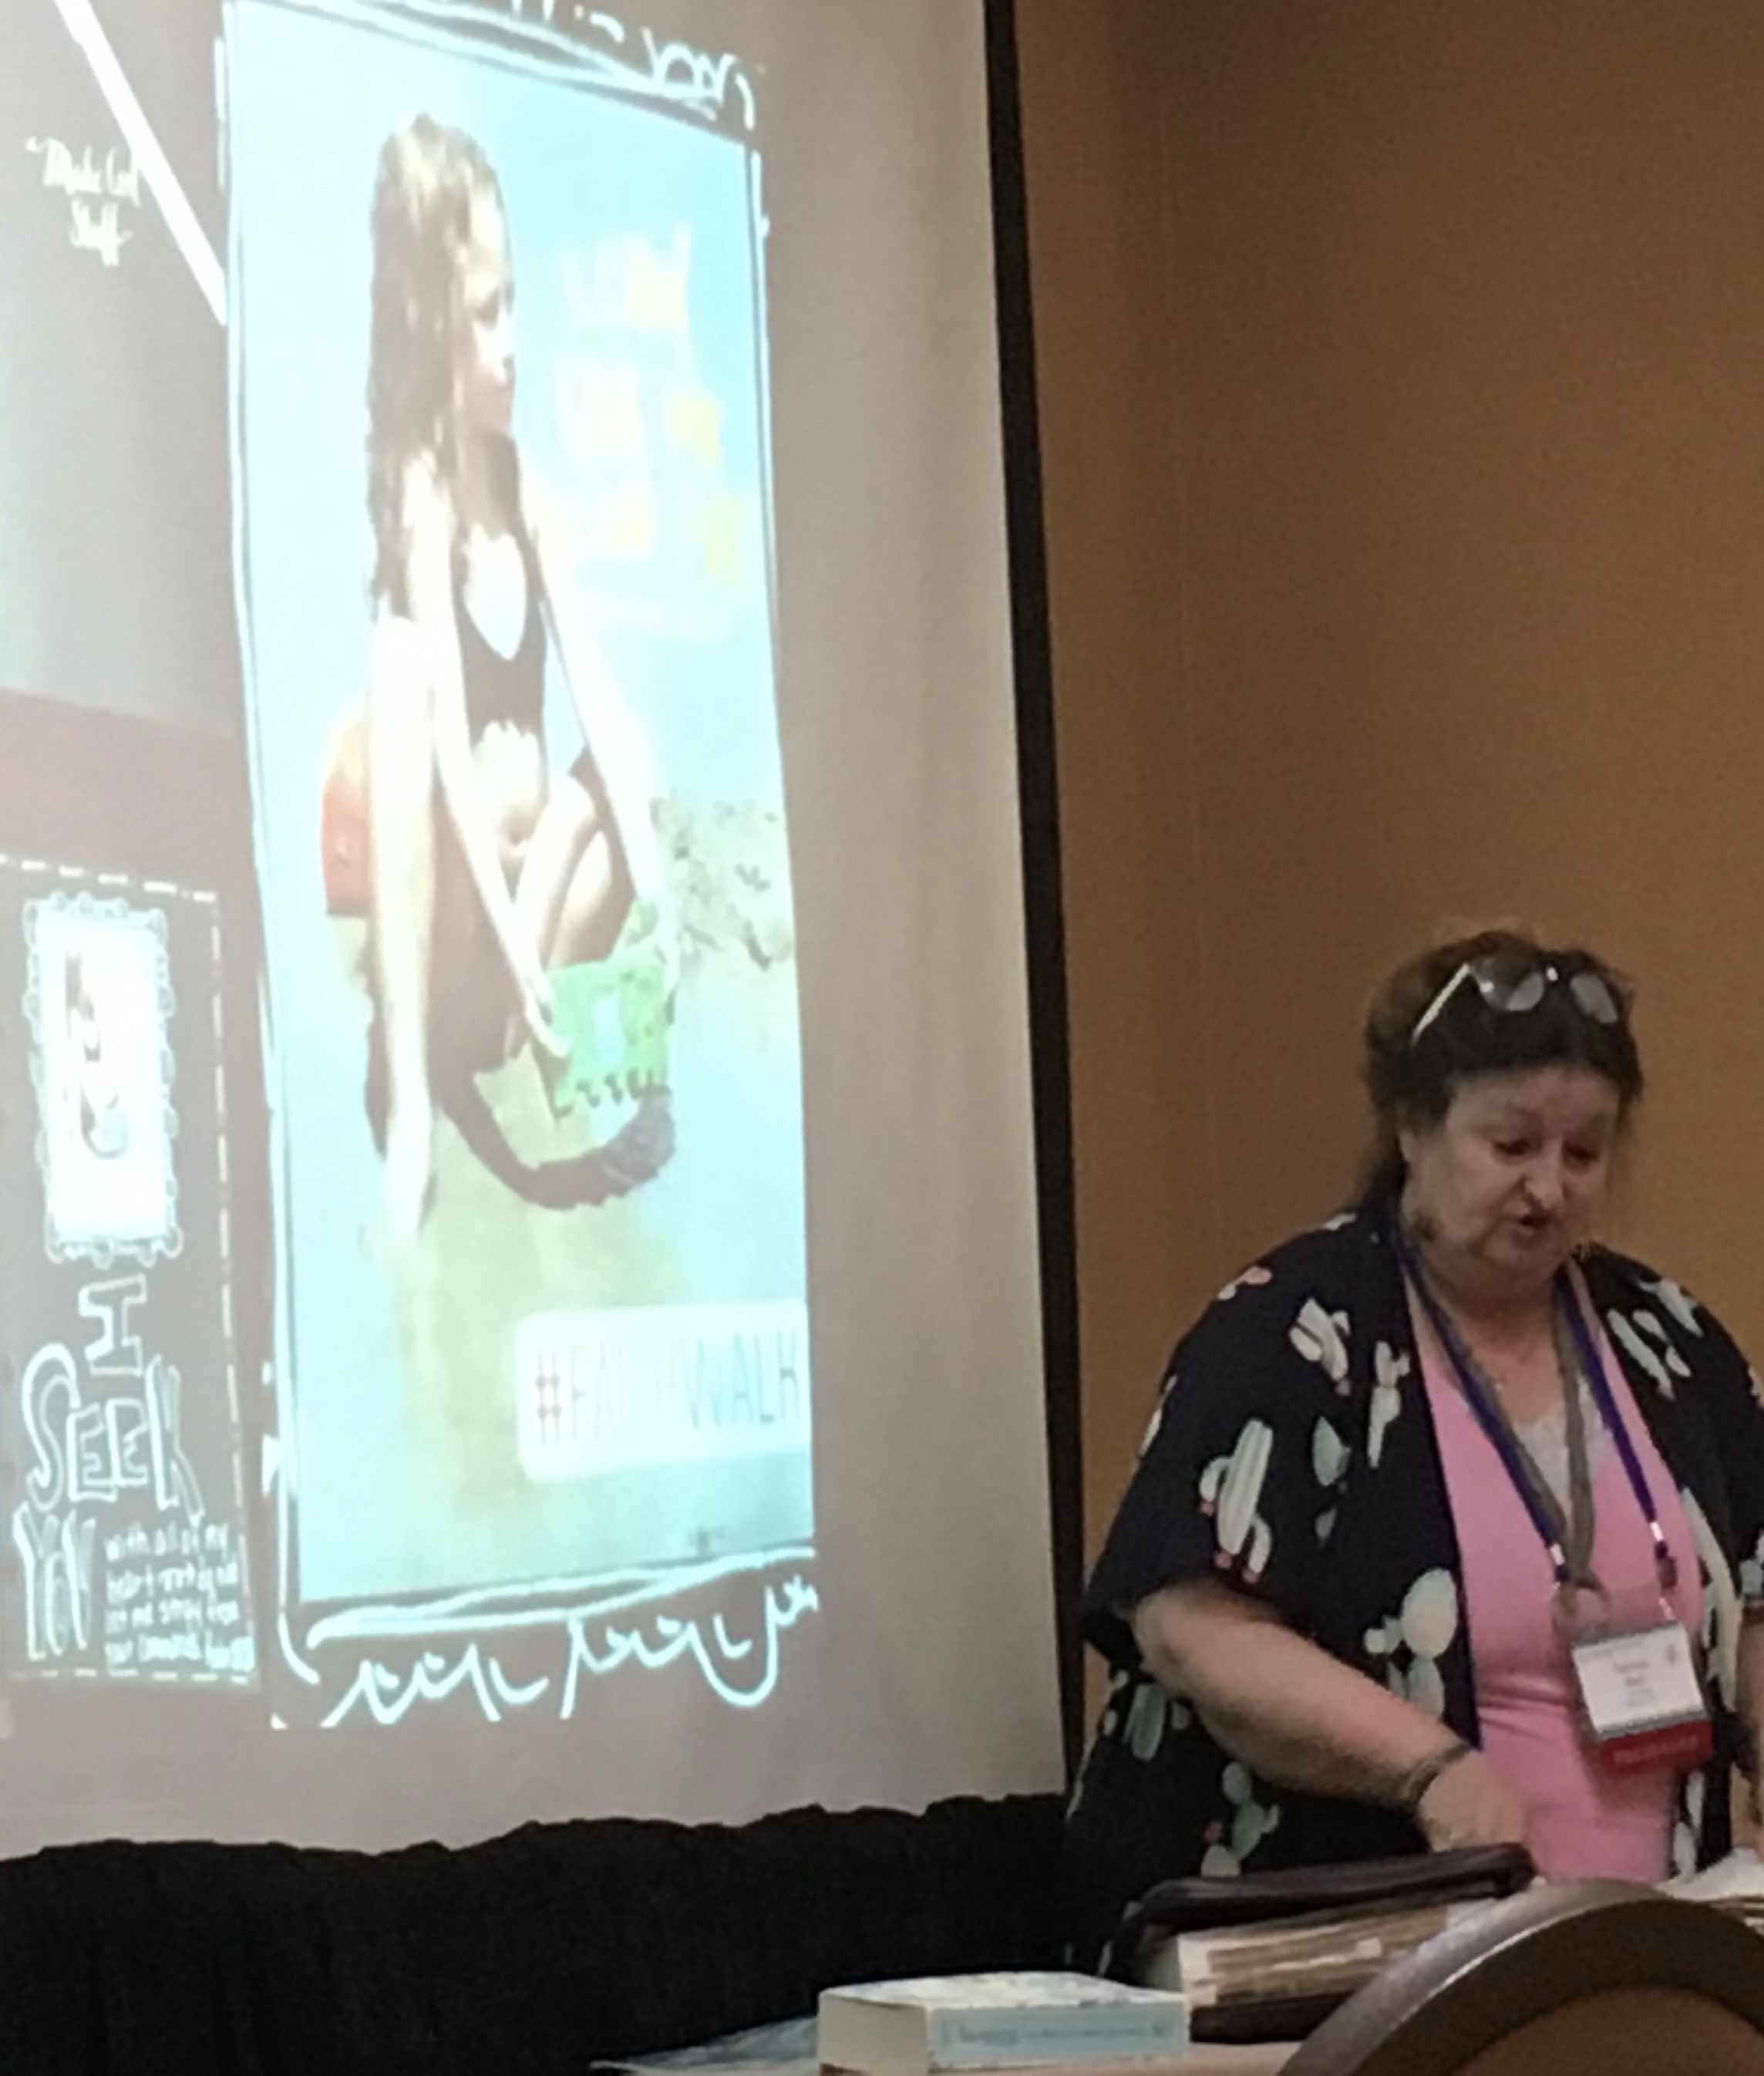 Thanks to Visual Faith Coach- Belinda Bost from Conover, North Carolina  for her Devotional Art workshop tracksat the 2018 Reaching for Others Conference  in Roanoke, Virginia this past weekend.